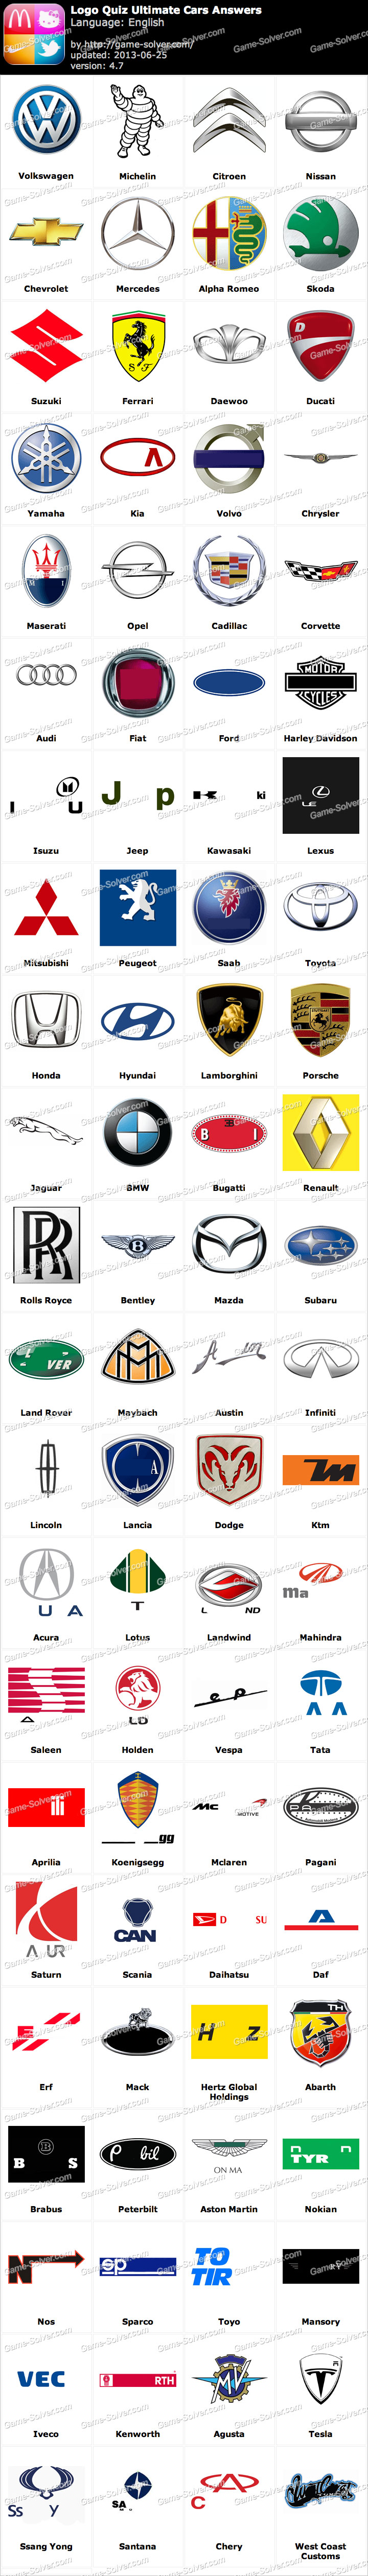 logo quiz ultimate cars answers